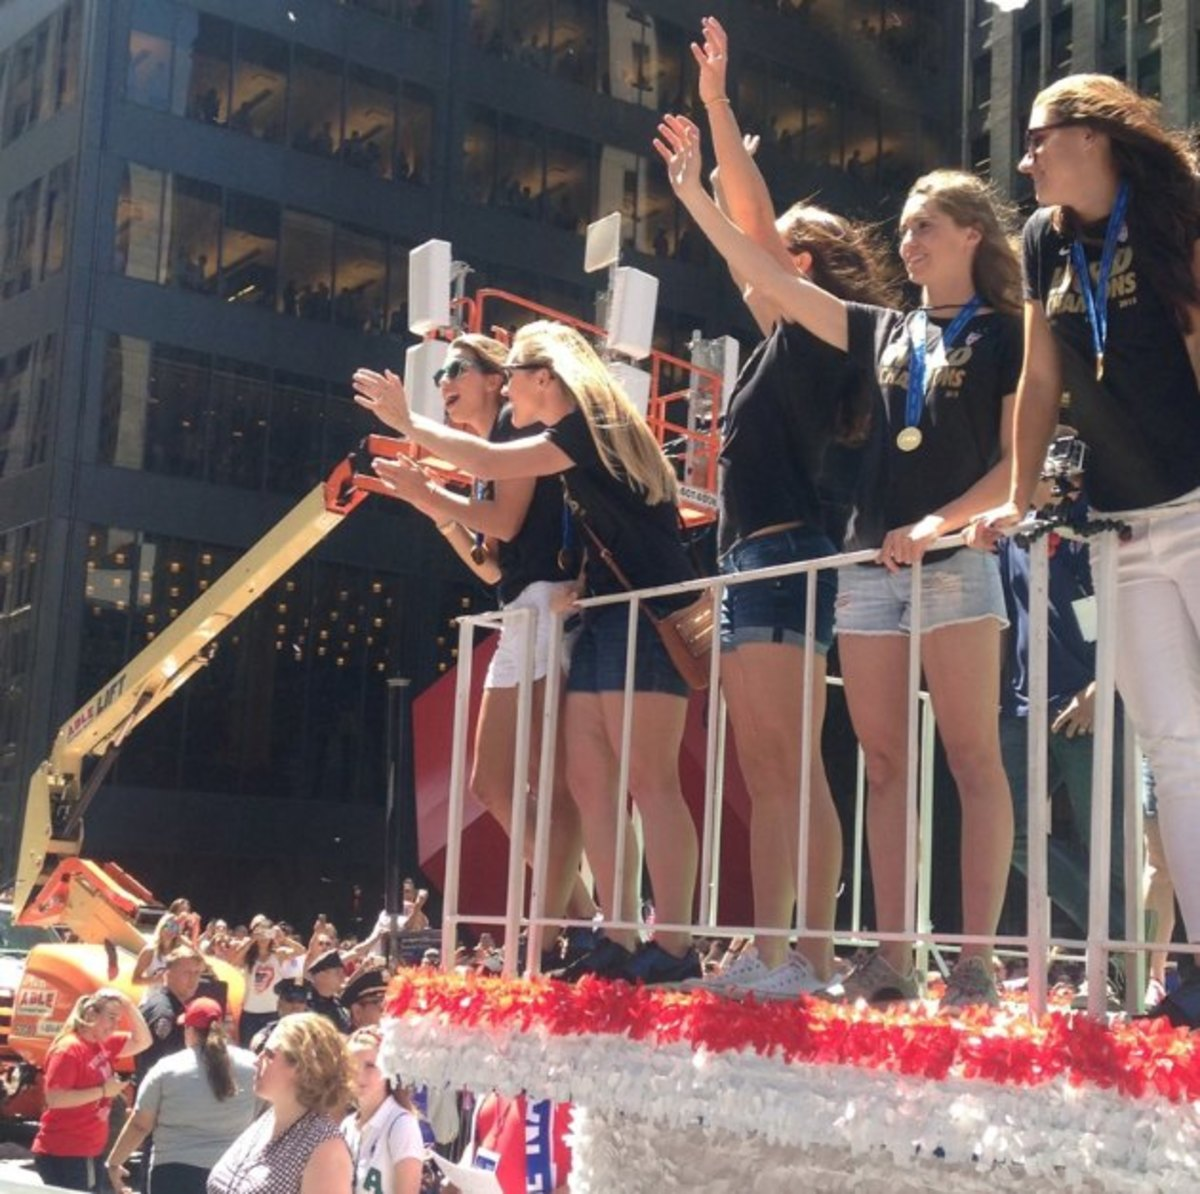 USWNT-parade-photos-2.jpg